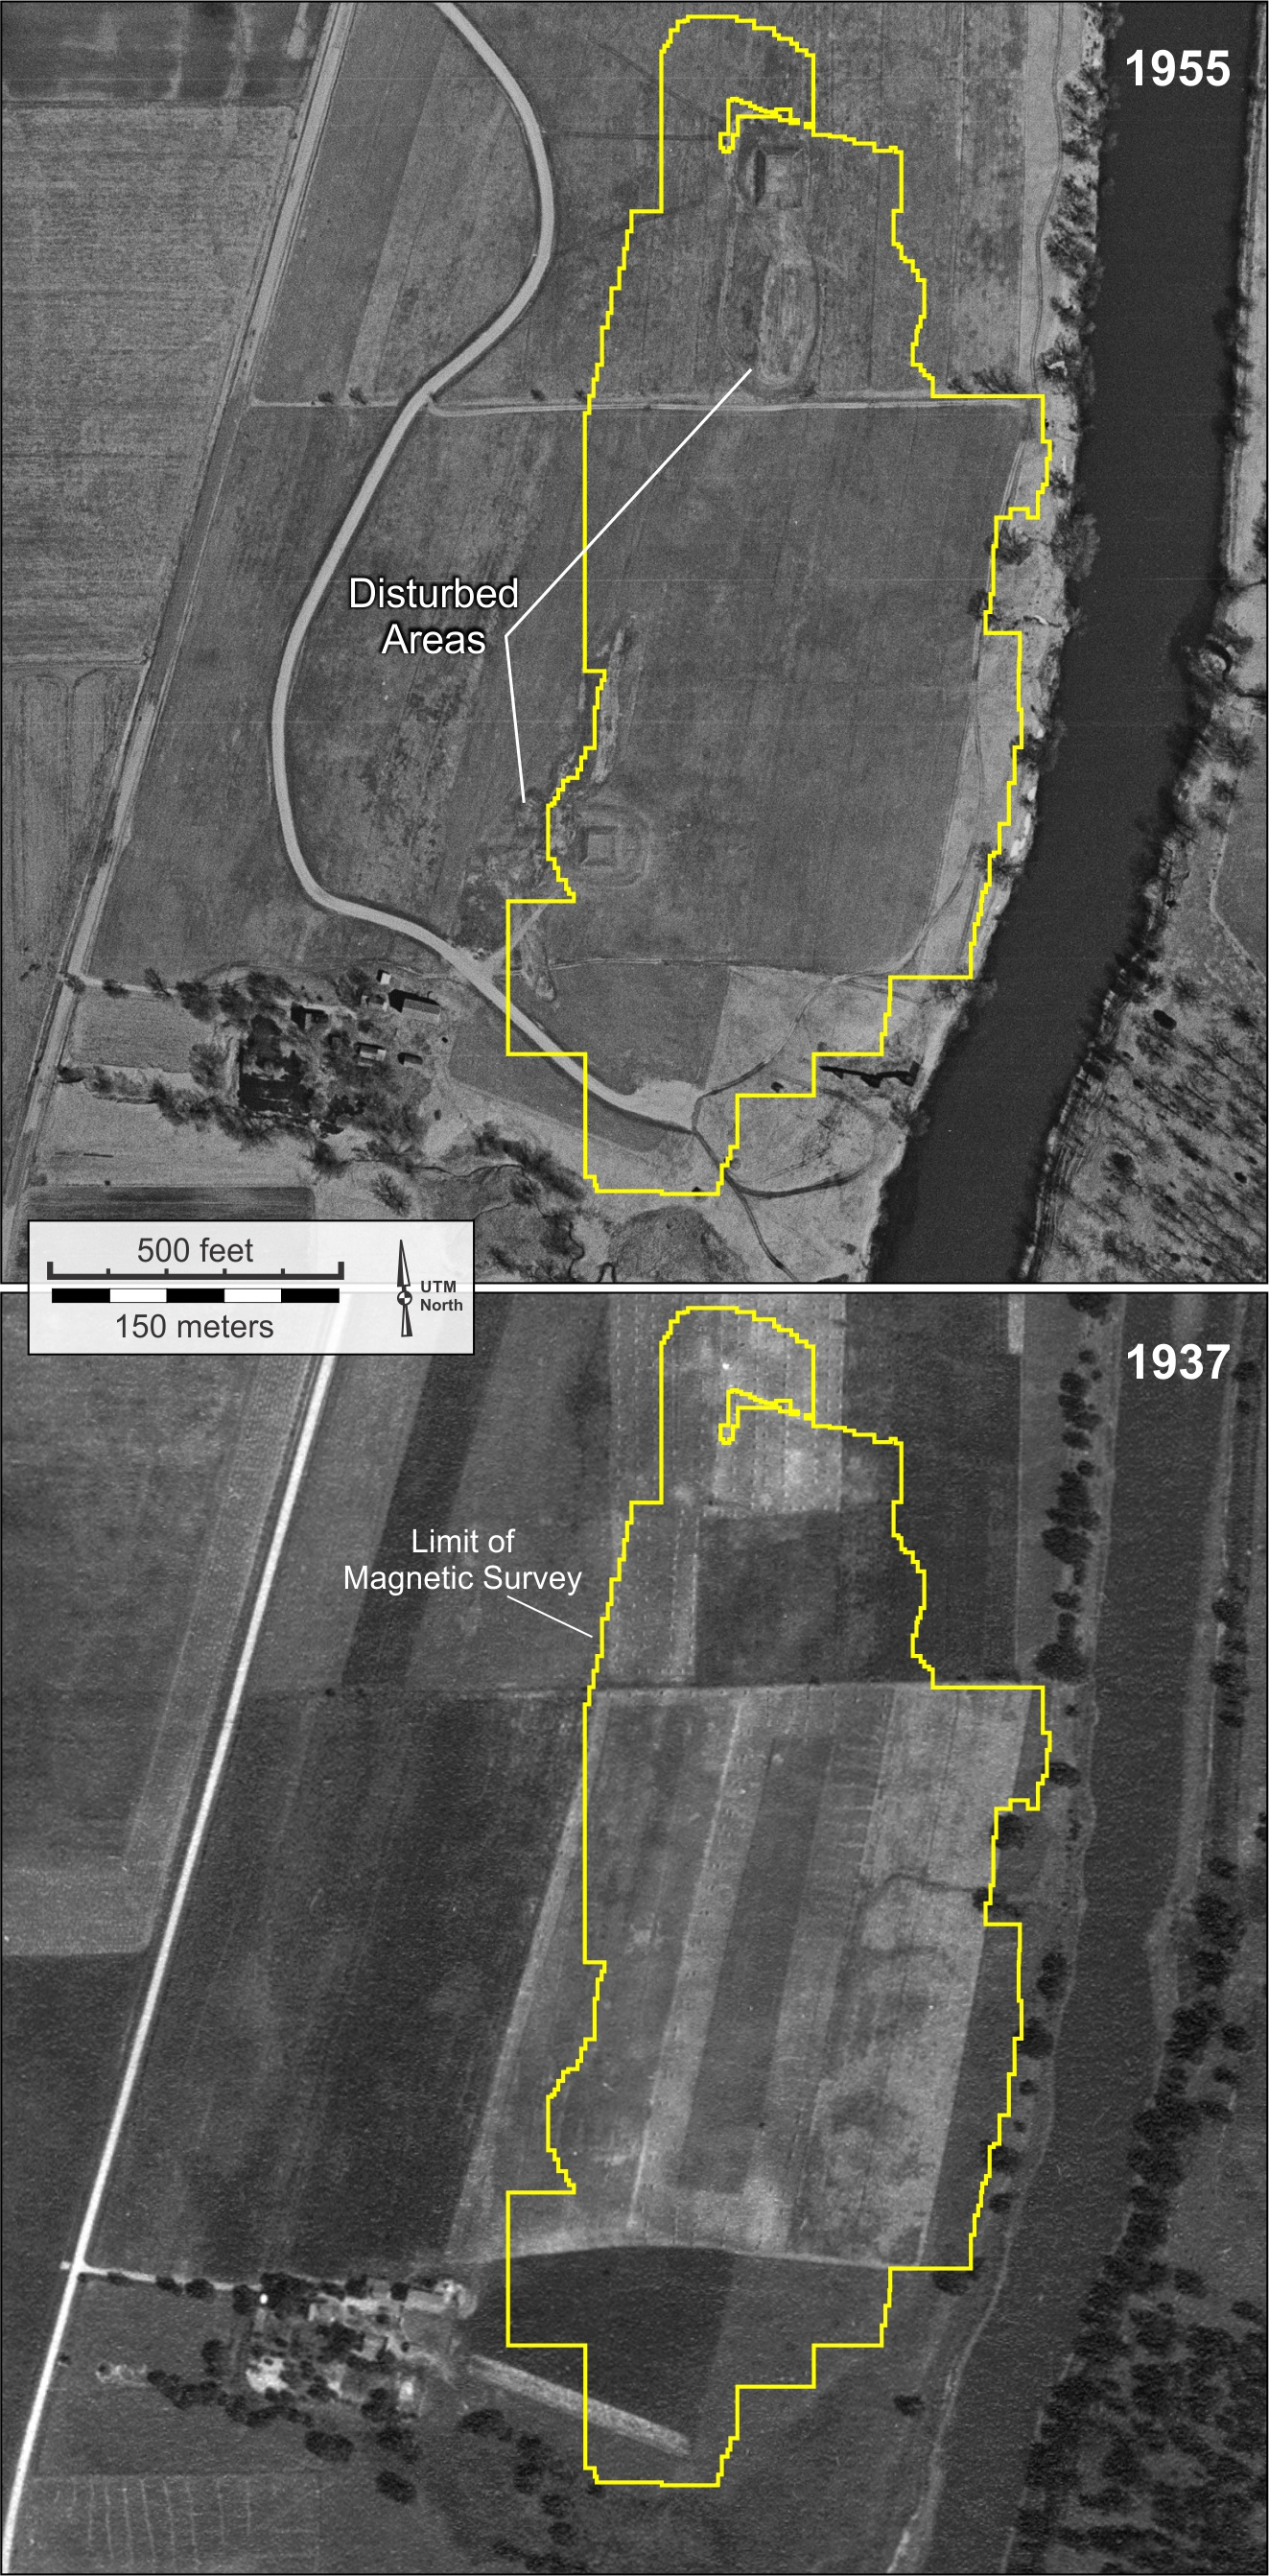 Figure 4. Historical, United States Department of Agriculture aerial photographs of the Aztalan State Park area.